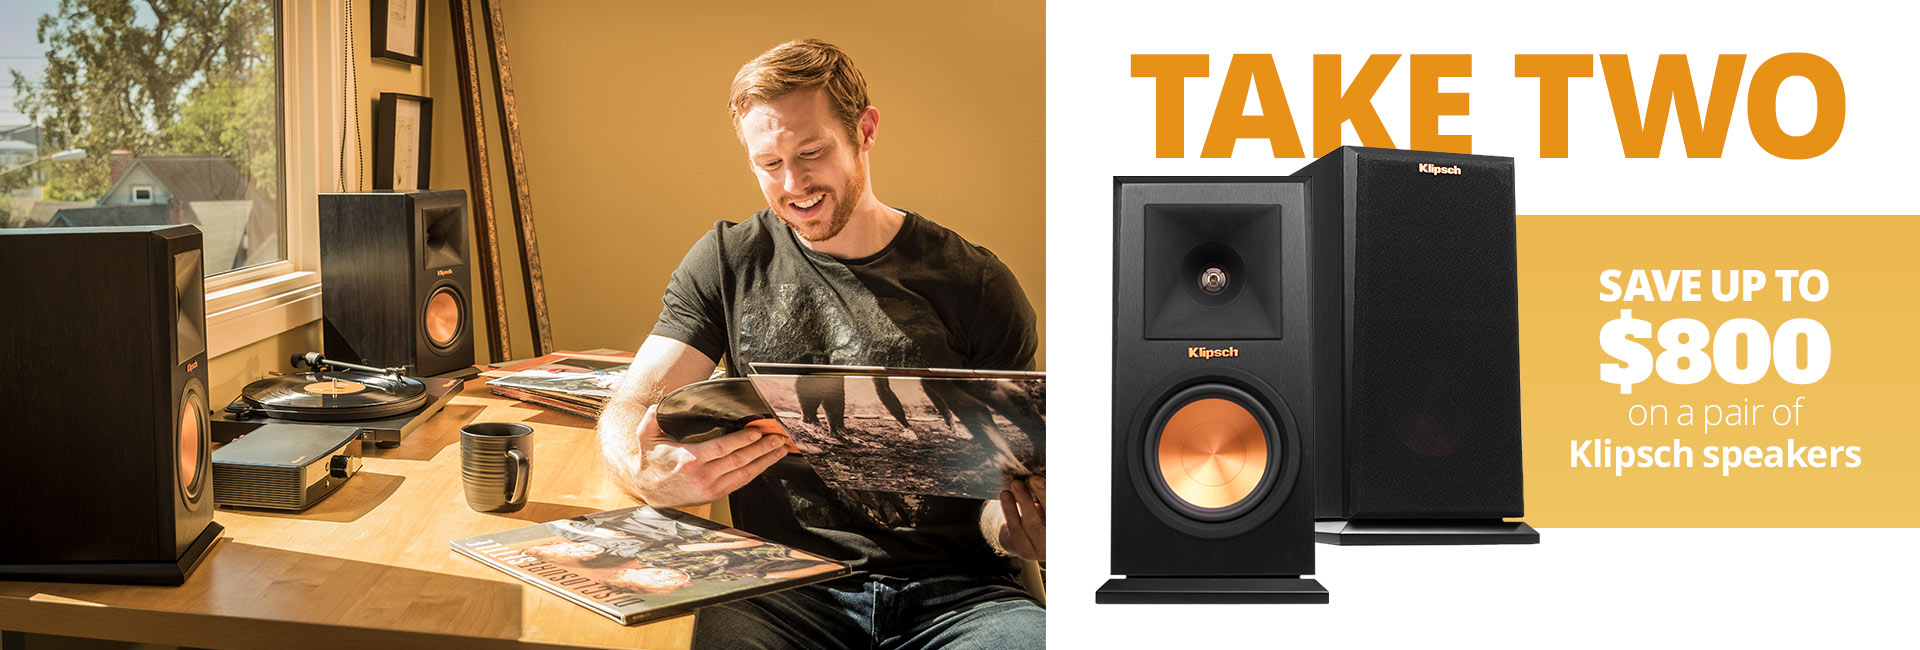 Save up to $800 on a pair of Klipsch speakers